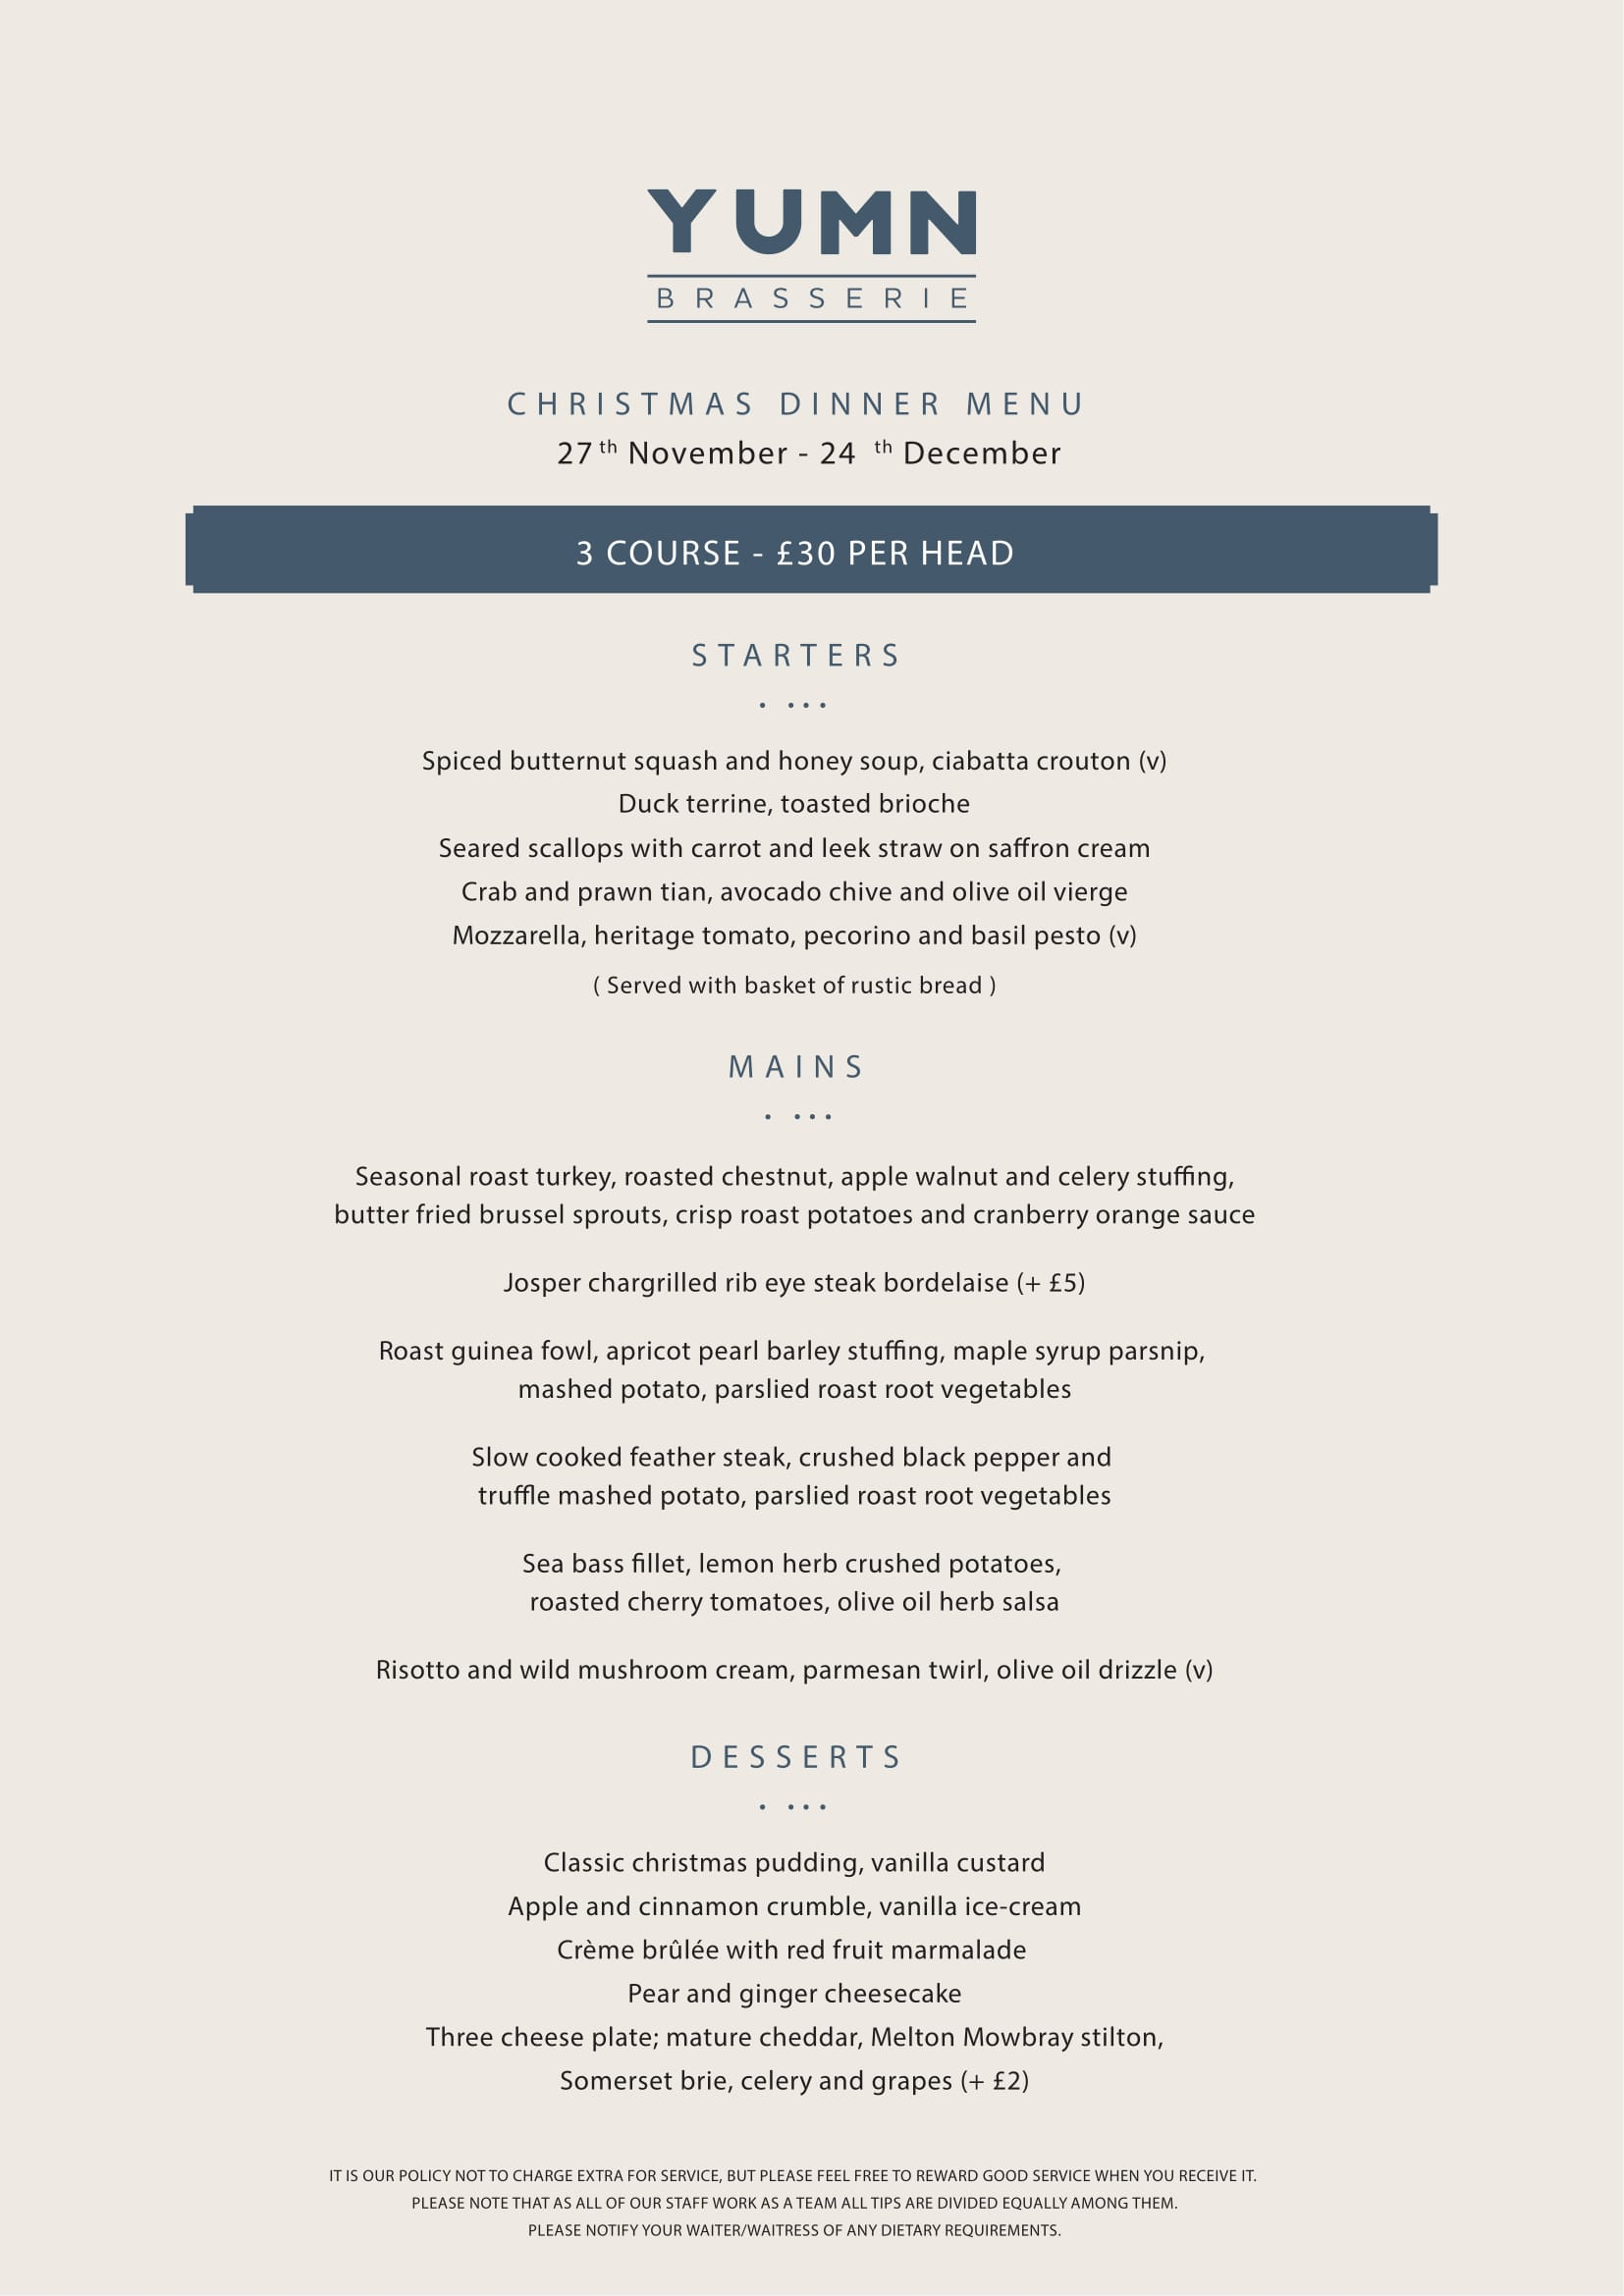 Yumn Brasserie Christmas Dinner Menu-page-001